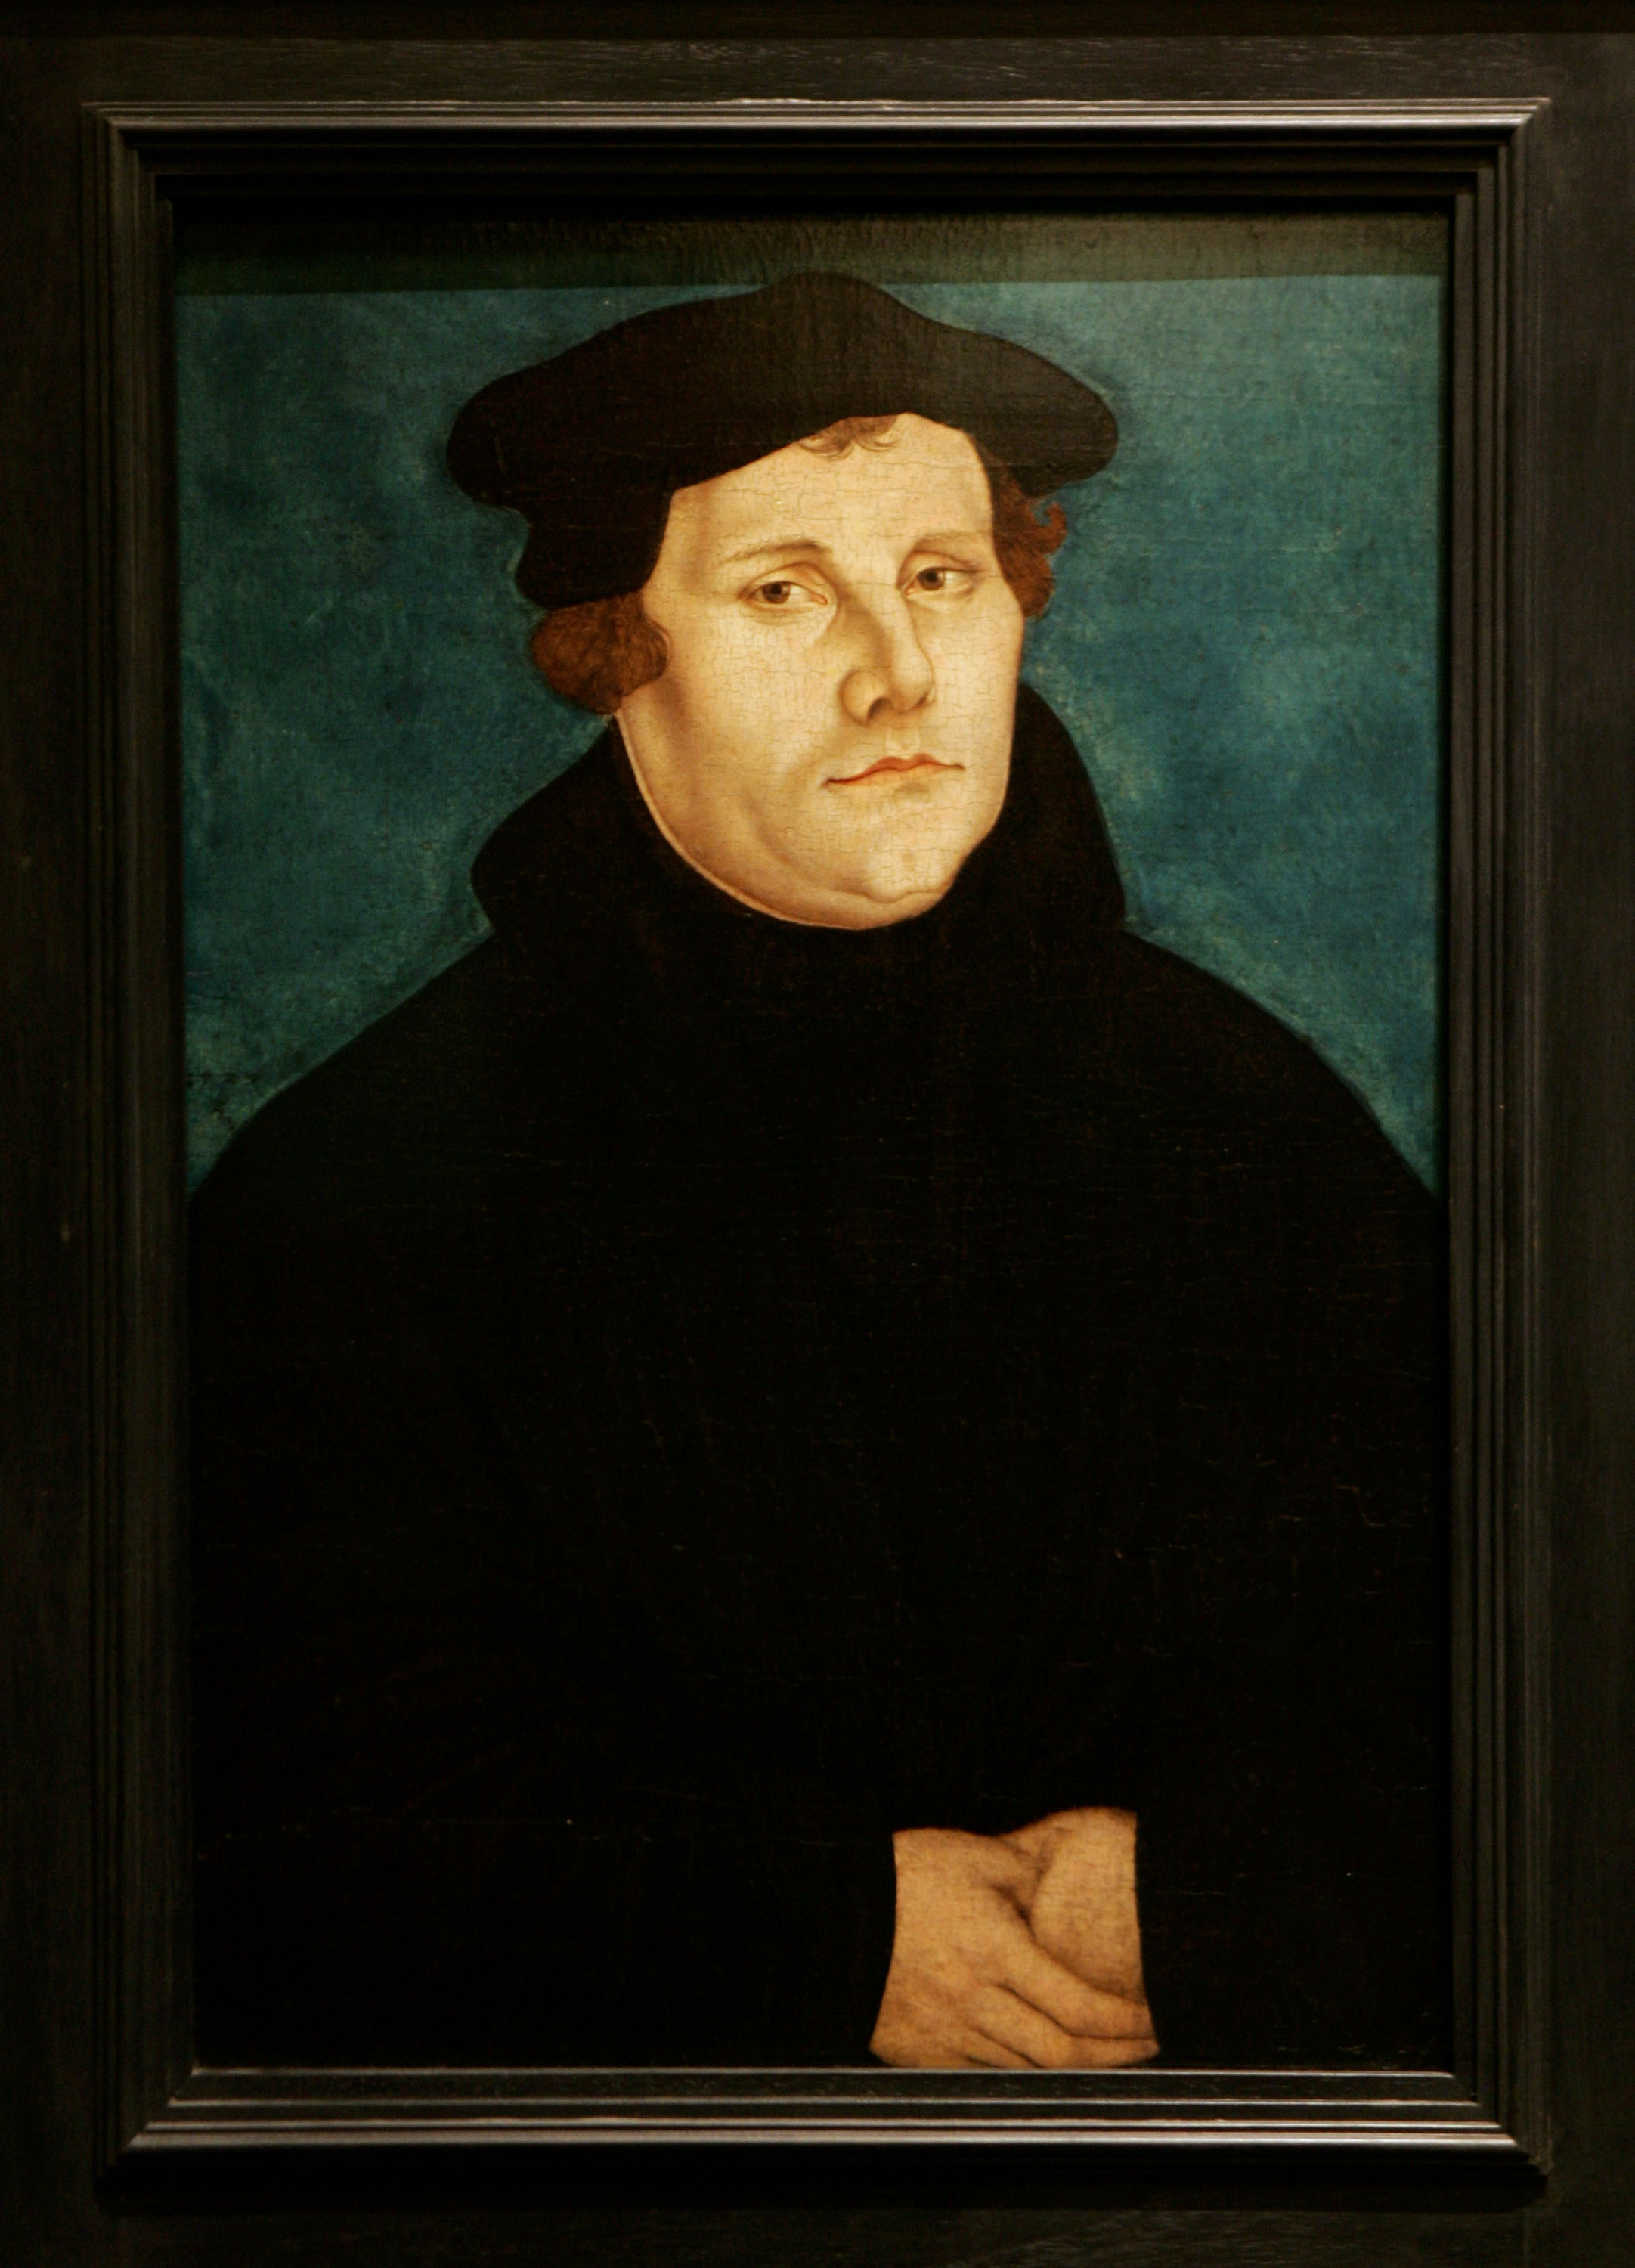 martin luther writings The ninety-five theses and other writings by martin luther for the 500th anniversary of the reformation, a new translation of martin luther's most famous works by leading luther scholar and pastor william russell.